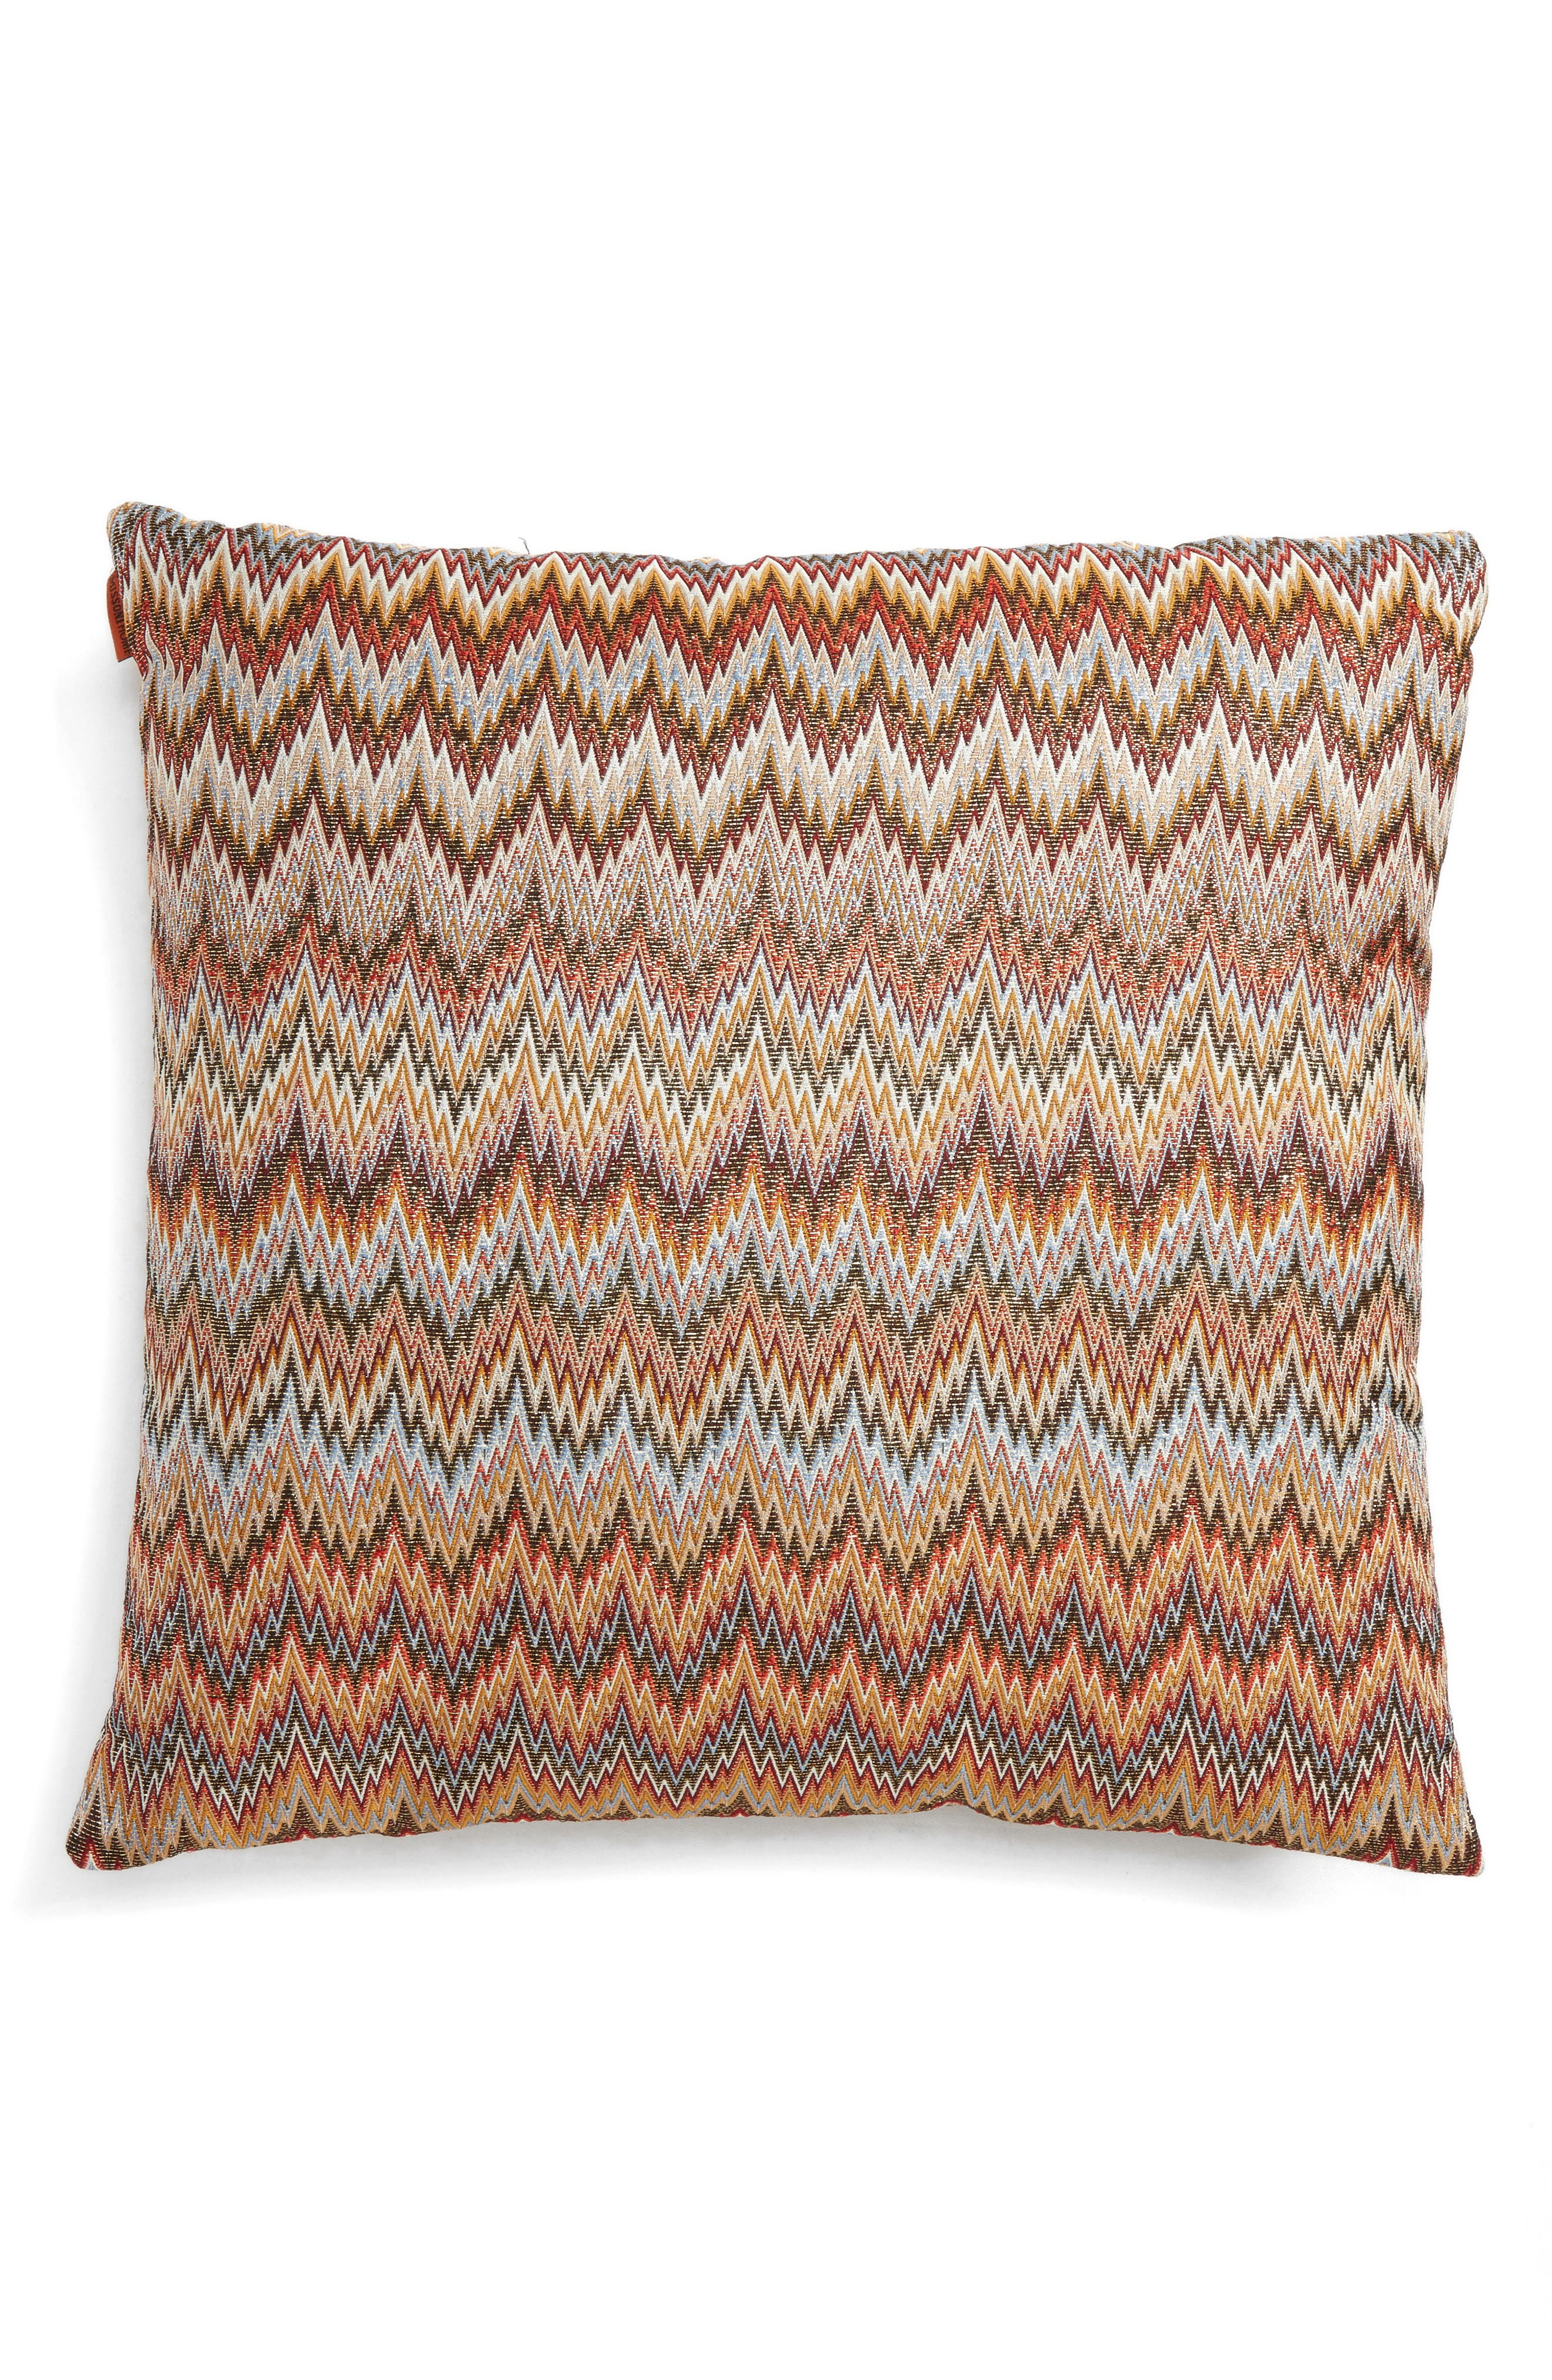 Alternate Image 1 Selected - Missoni Plaisir Accent Pillow